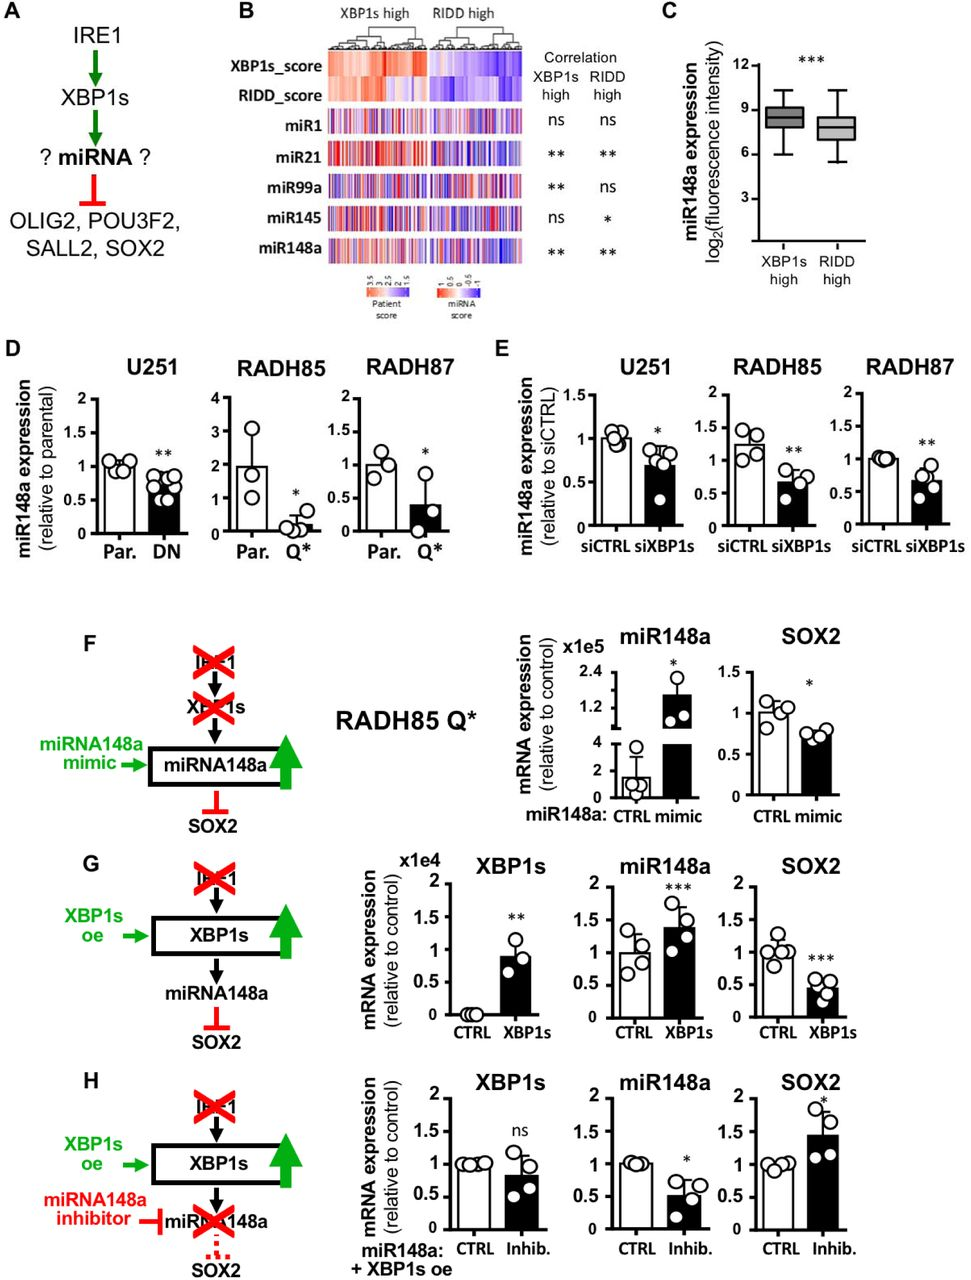 XBP1s-dependent expression of miR148a prevents GBM cell reprogramming. A) Schematic representation of hypothesis of effect of IRE1 signaling on reprogramming TFs. B) Hierarchical clustering of miRNAs in GBM (TCGA cohort) confronted to high XBP1s or high RIDD activity (blue low levels, red high levels) with the best 5 candidates shown. C) mRNA expression of miR148a based on microarray fluorescence intensity in high XBP1s and high RIDD activity tumors (TCGA cohort). D) miR148a expression in adherent lines U251, RADH85/87 expressing DN or Q* forms of IRE1 normalized to parental. E) miR148a expression in adherent lines U251, RADH85/87 transiently deficient for XBP1s through siRNA transfection compared to control. F) SOX2 and miR148a expression levels in RADH85 IRE1 Q* expressing cells in the presence of miR148a mimic compared to control. G) XBP1s, SOX2 and miR148a expression levels in RADH85 IRE1 Q* expressing cells, over-expressing XBP1s compared to control. H) XBP1s, SOX2 and miR148a expression levels in RADH85 IRE1 Q* expressing cells, over-expressing XBP1s, in the presence of miR148a inhibitors compared to control. (ns): not significant; (*): p